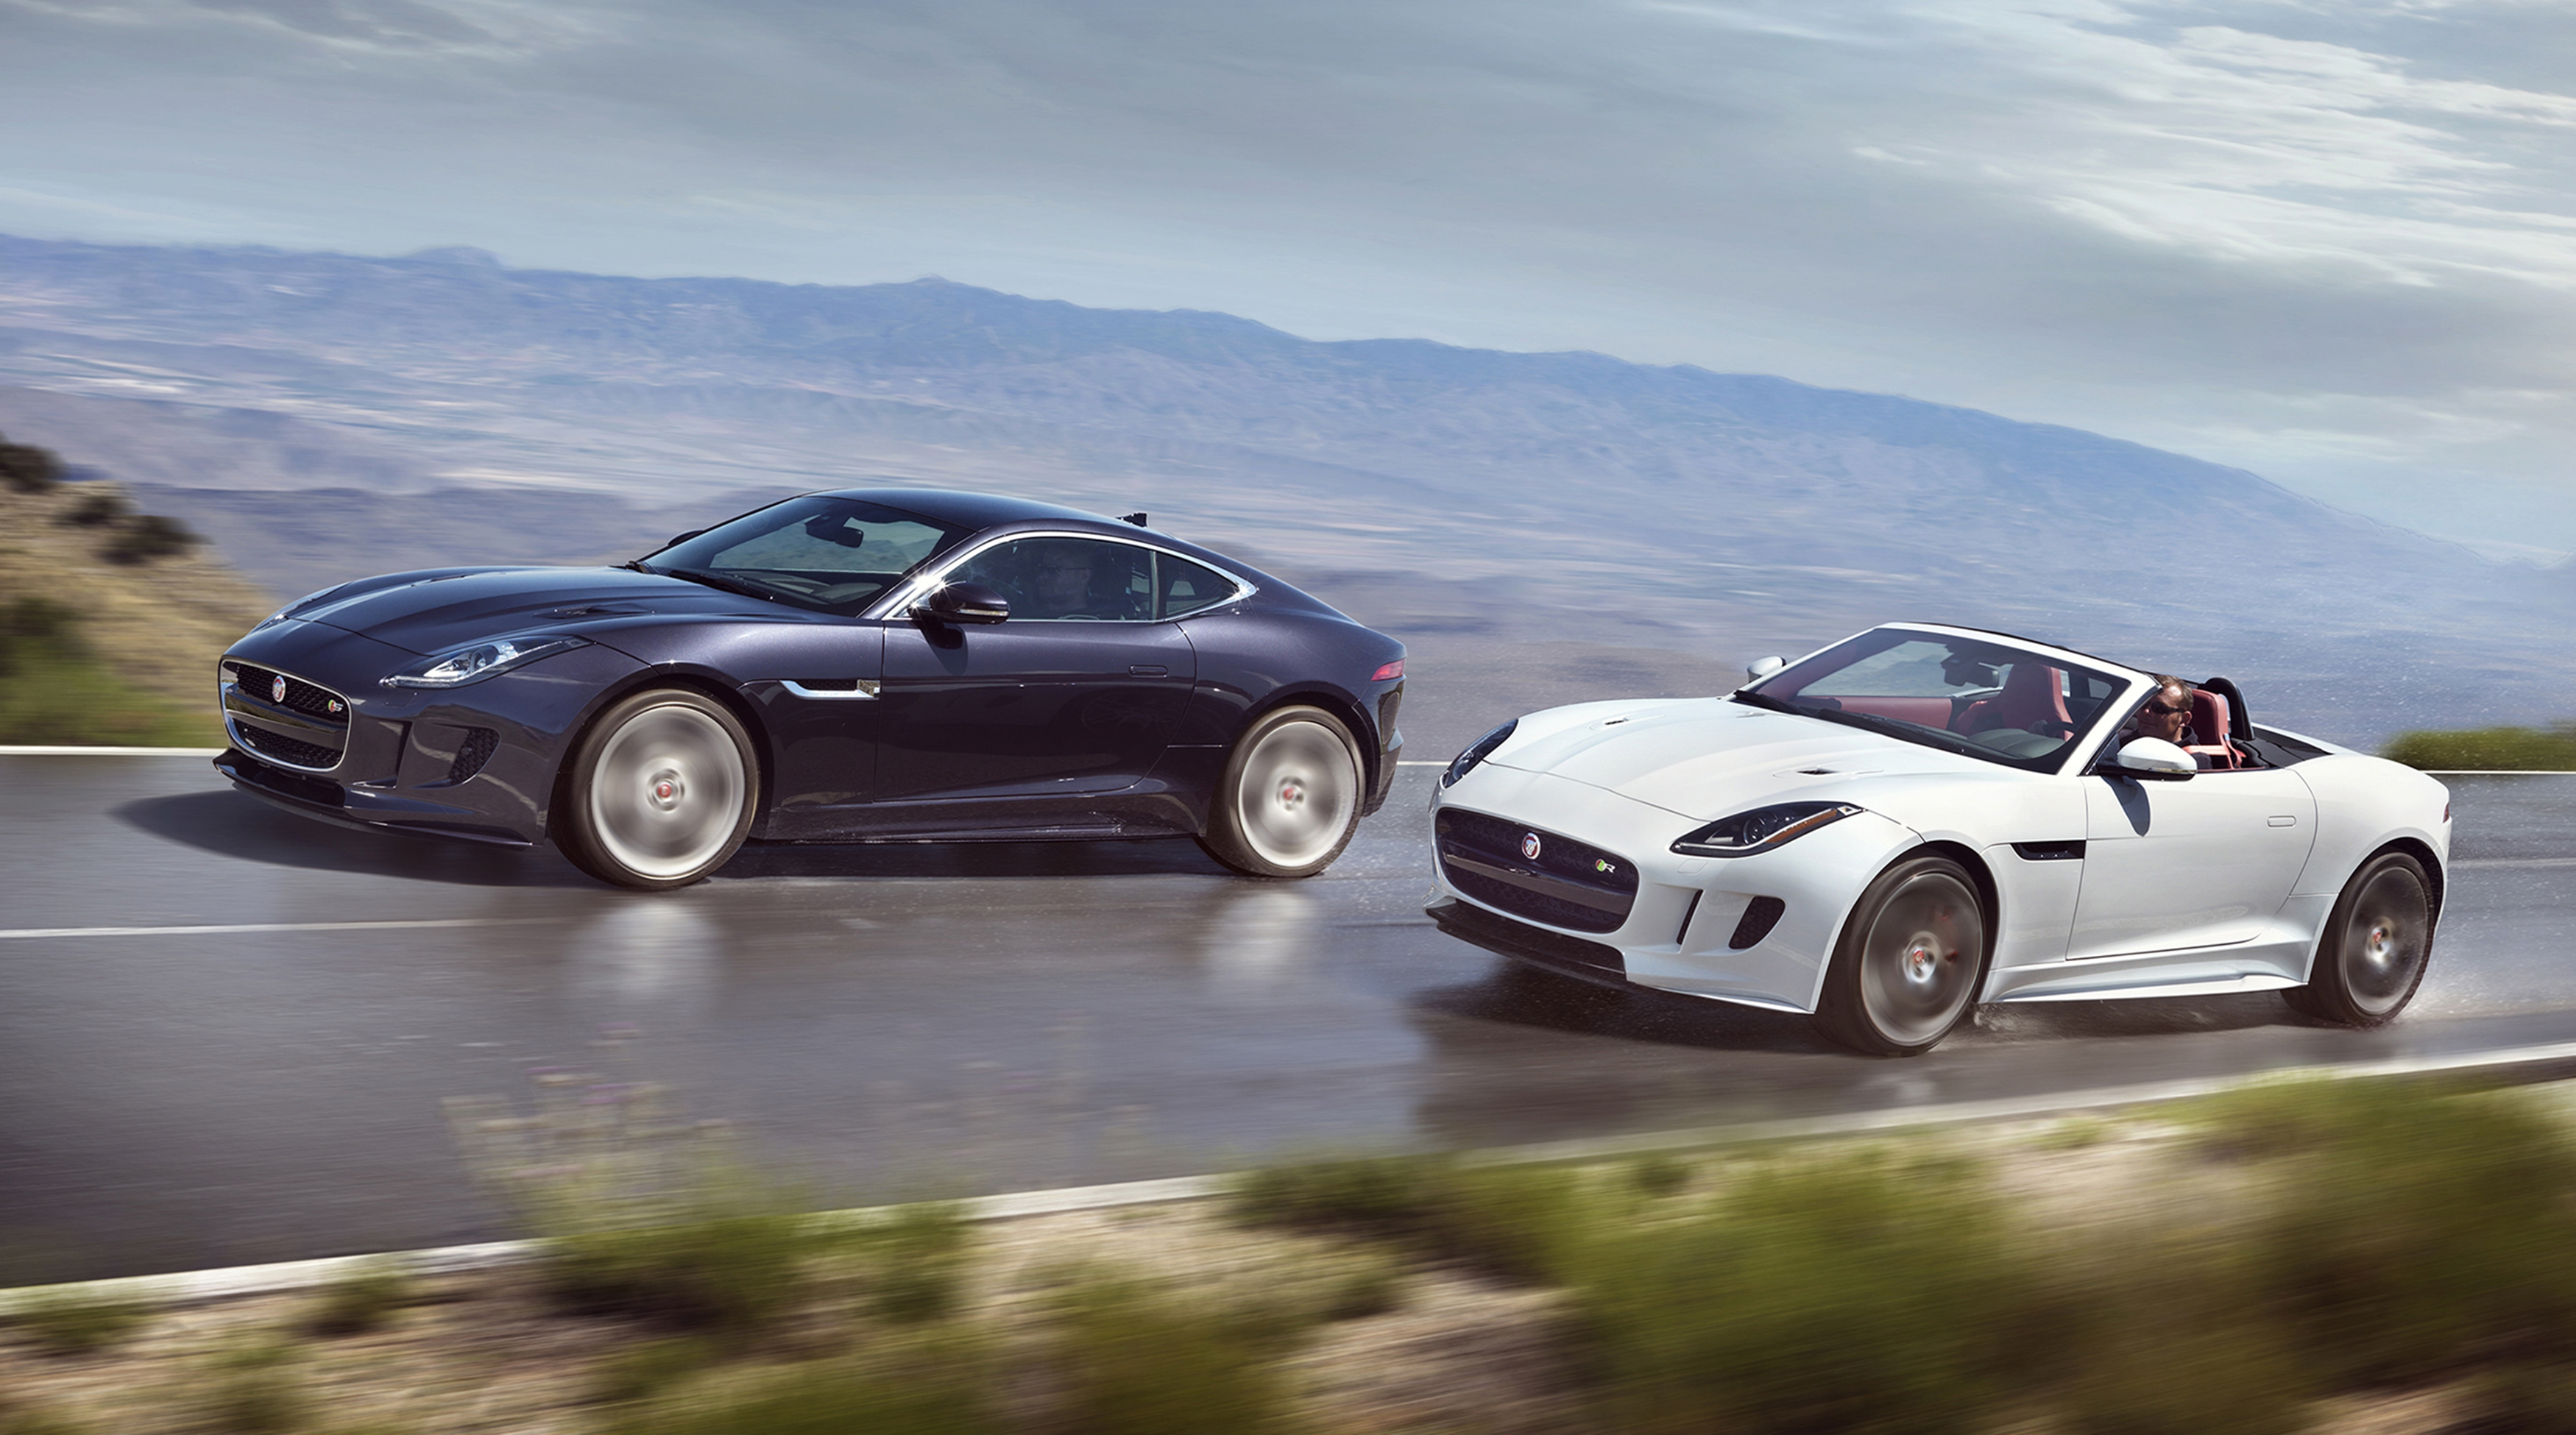 jaguar_f-type_6.jpeg